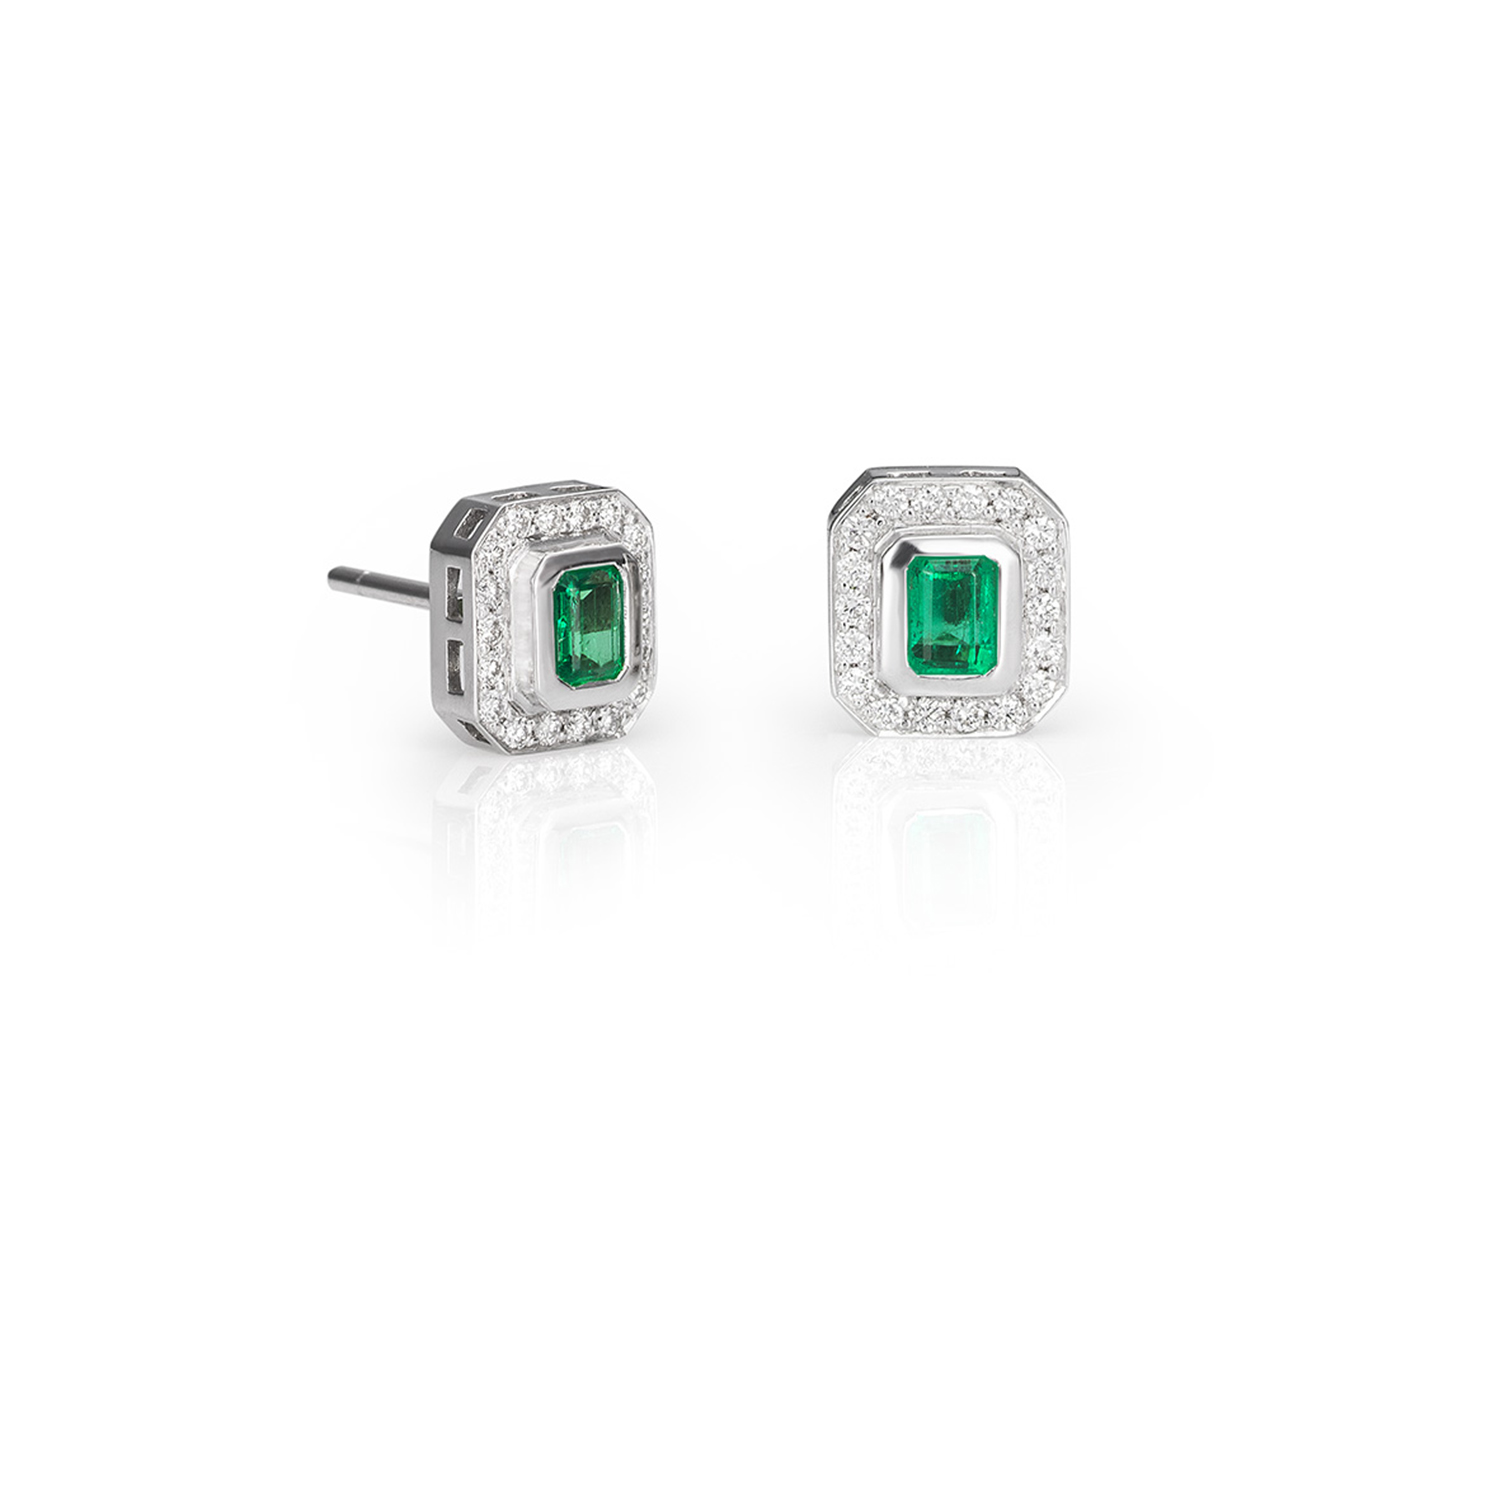 Sensi joyas jewellery Granada silver engagement18K WHITE GOLD EARRINGS WITH TWO 0.50CT NATURAL EMERALDS SIZE EMERALD AND 0.28CT DIAMOND TRIMMING SIZE BRILLIANT.